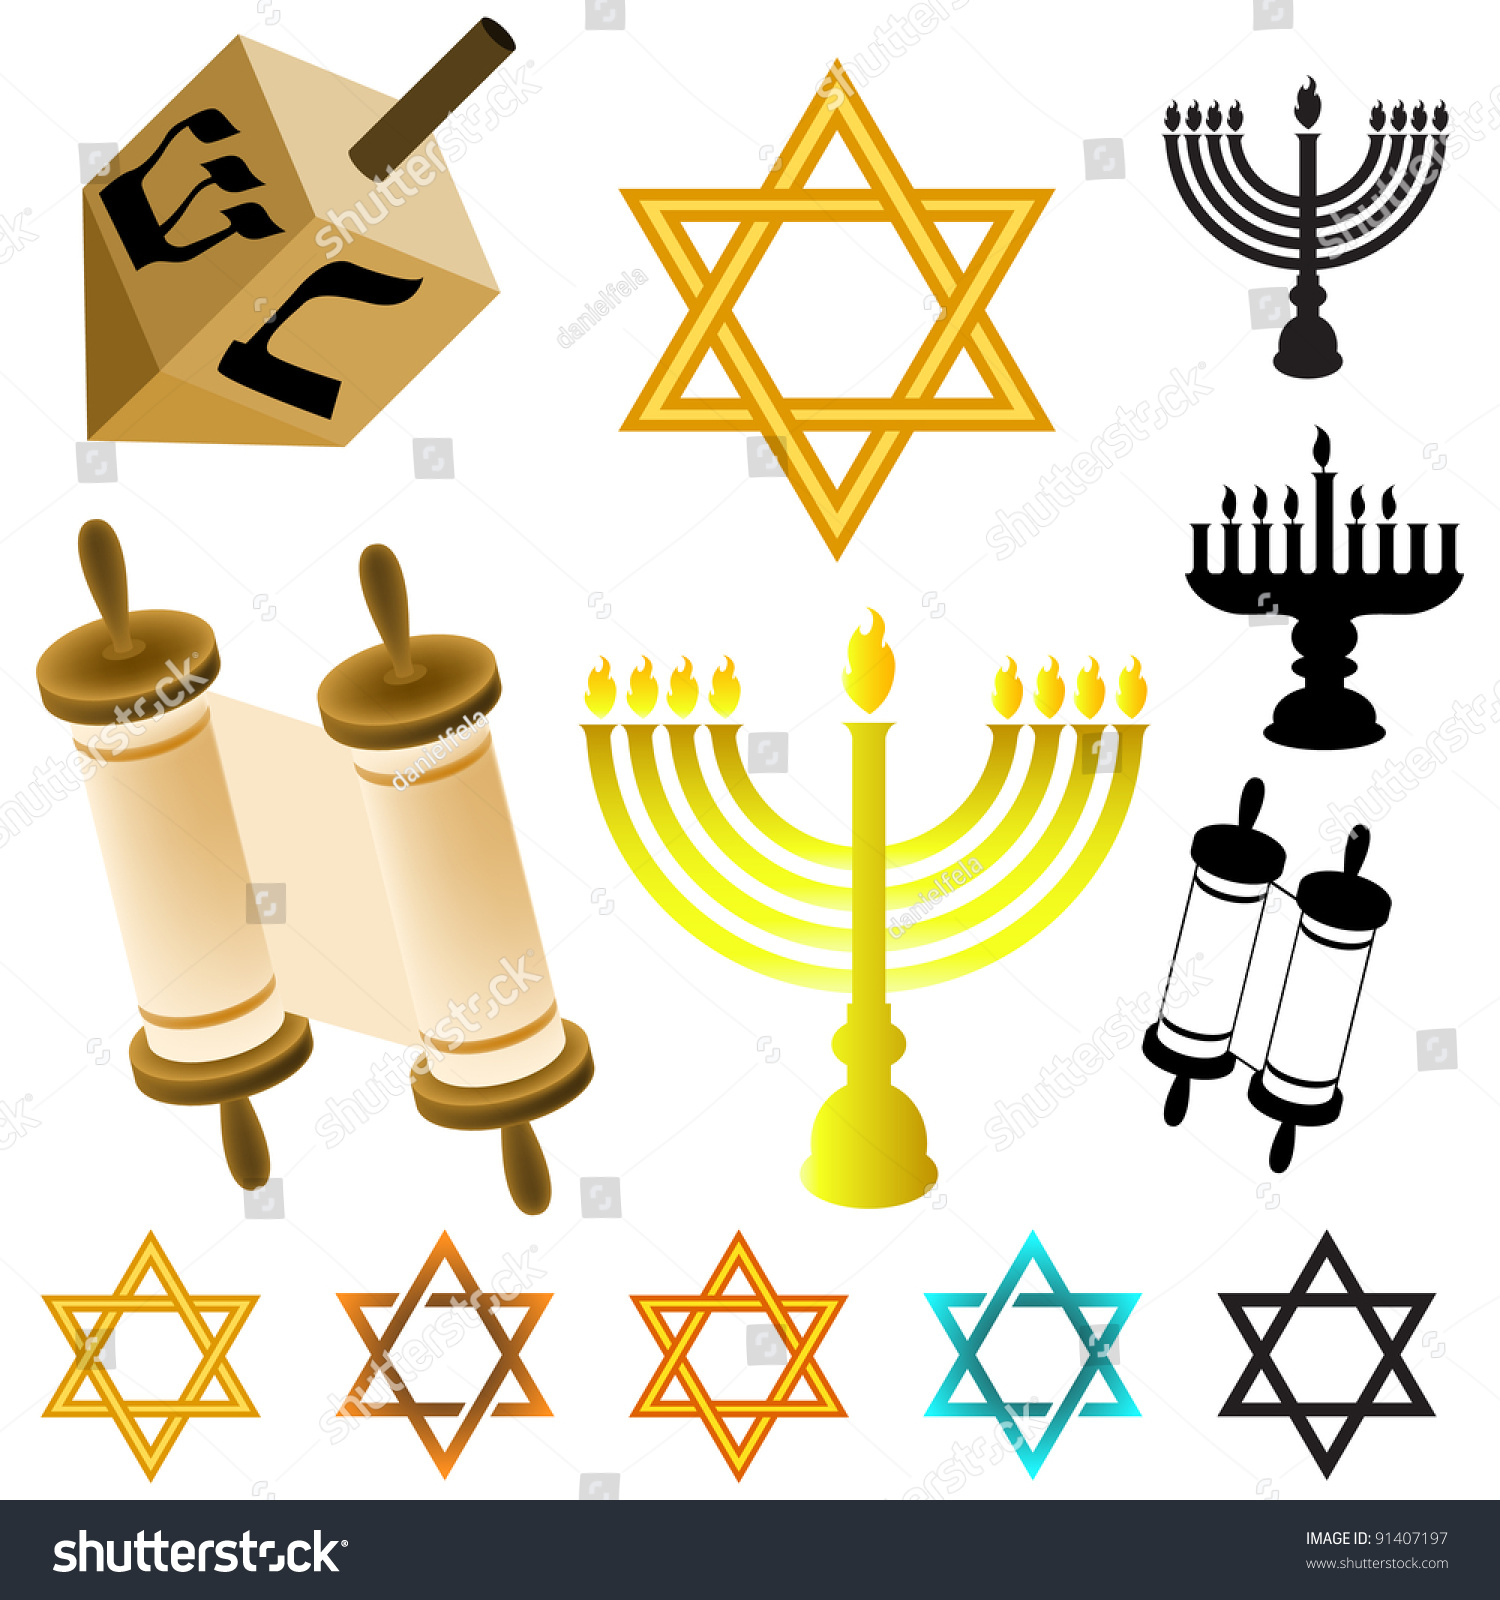 Royalty Free Stock Illustration Of Judaism Symbols Stock